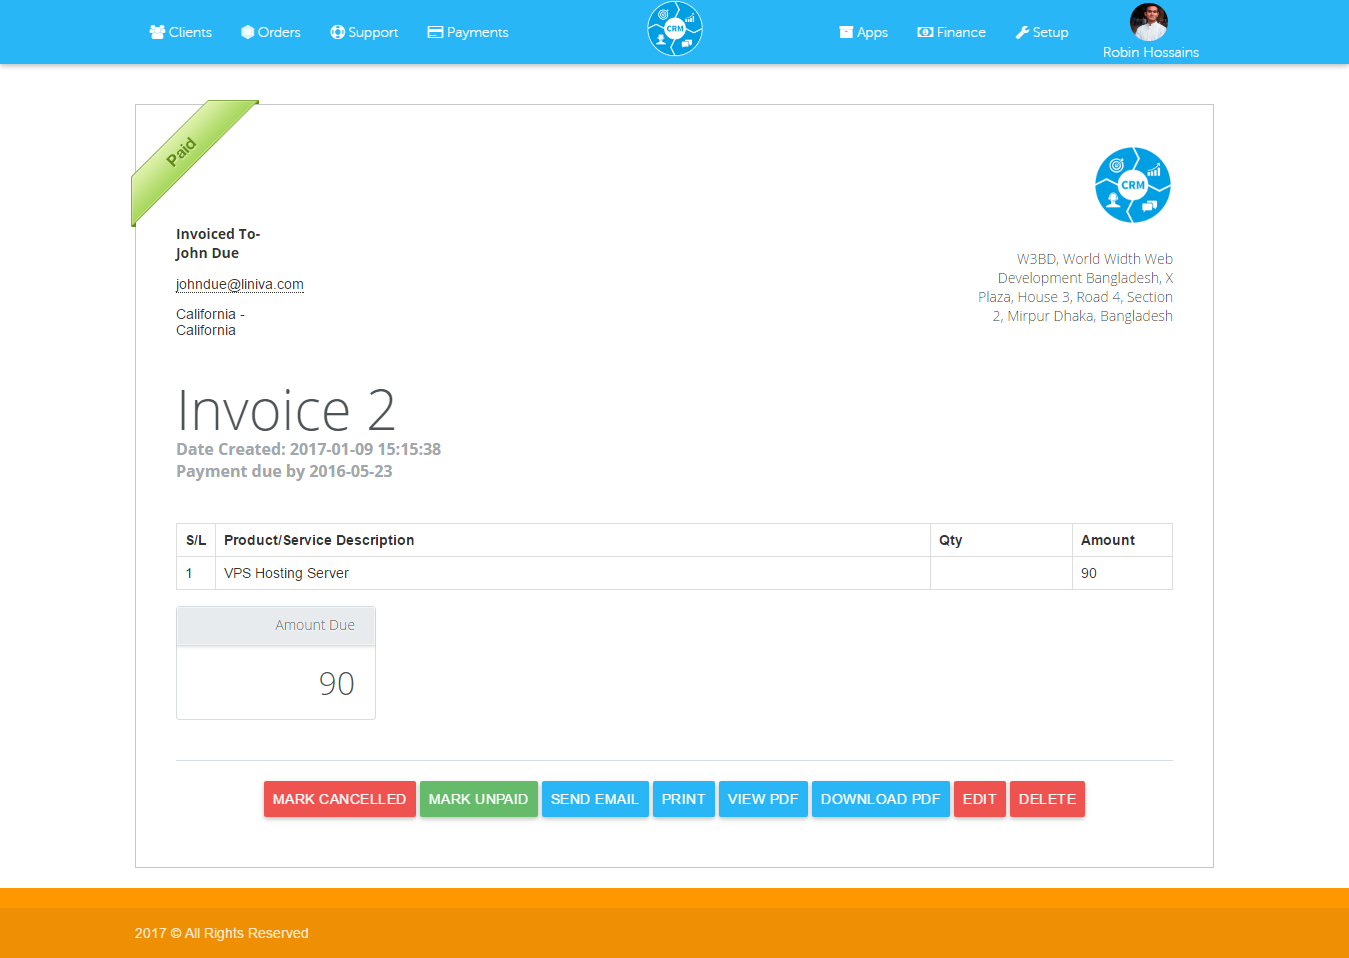 Crm Ticketing Sales Products Client And Business Management